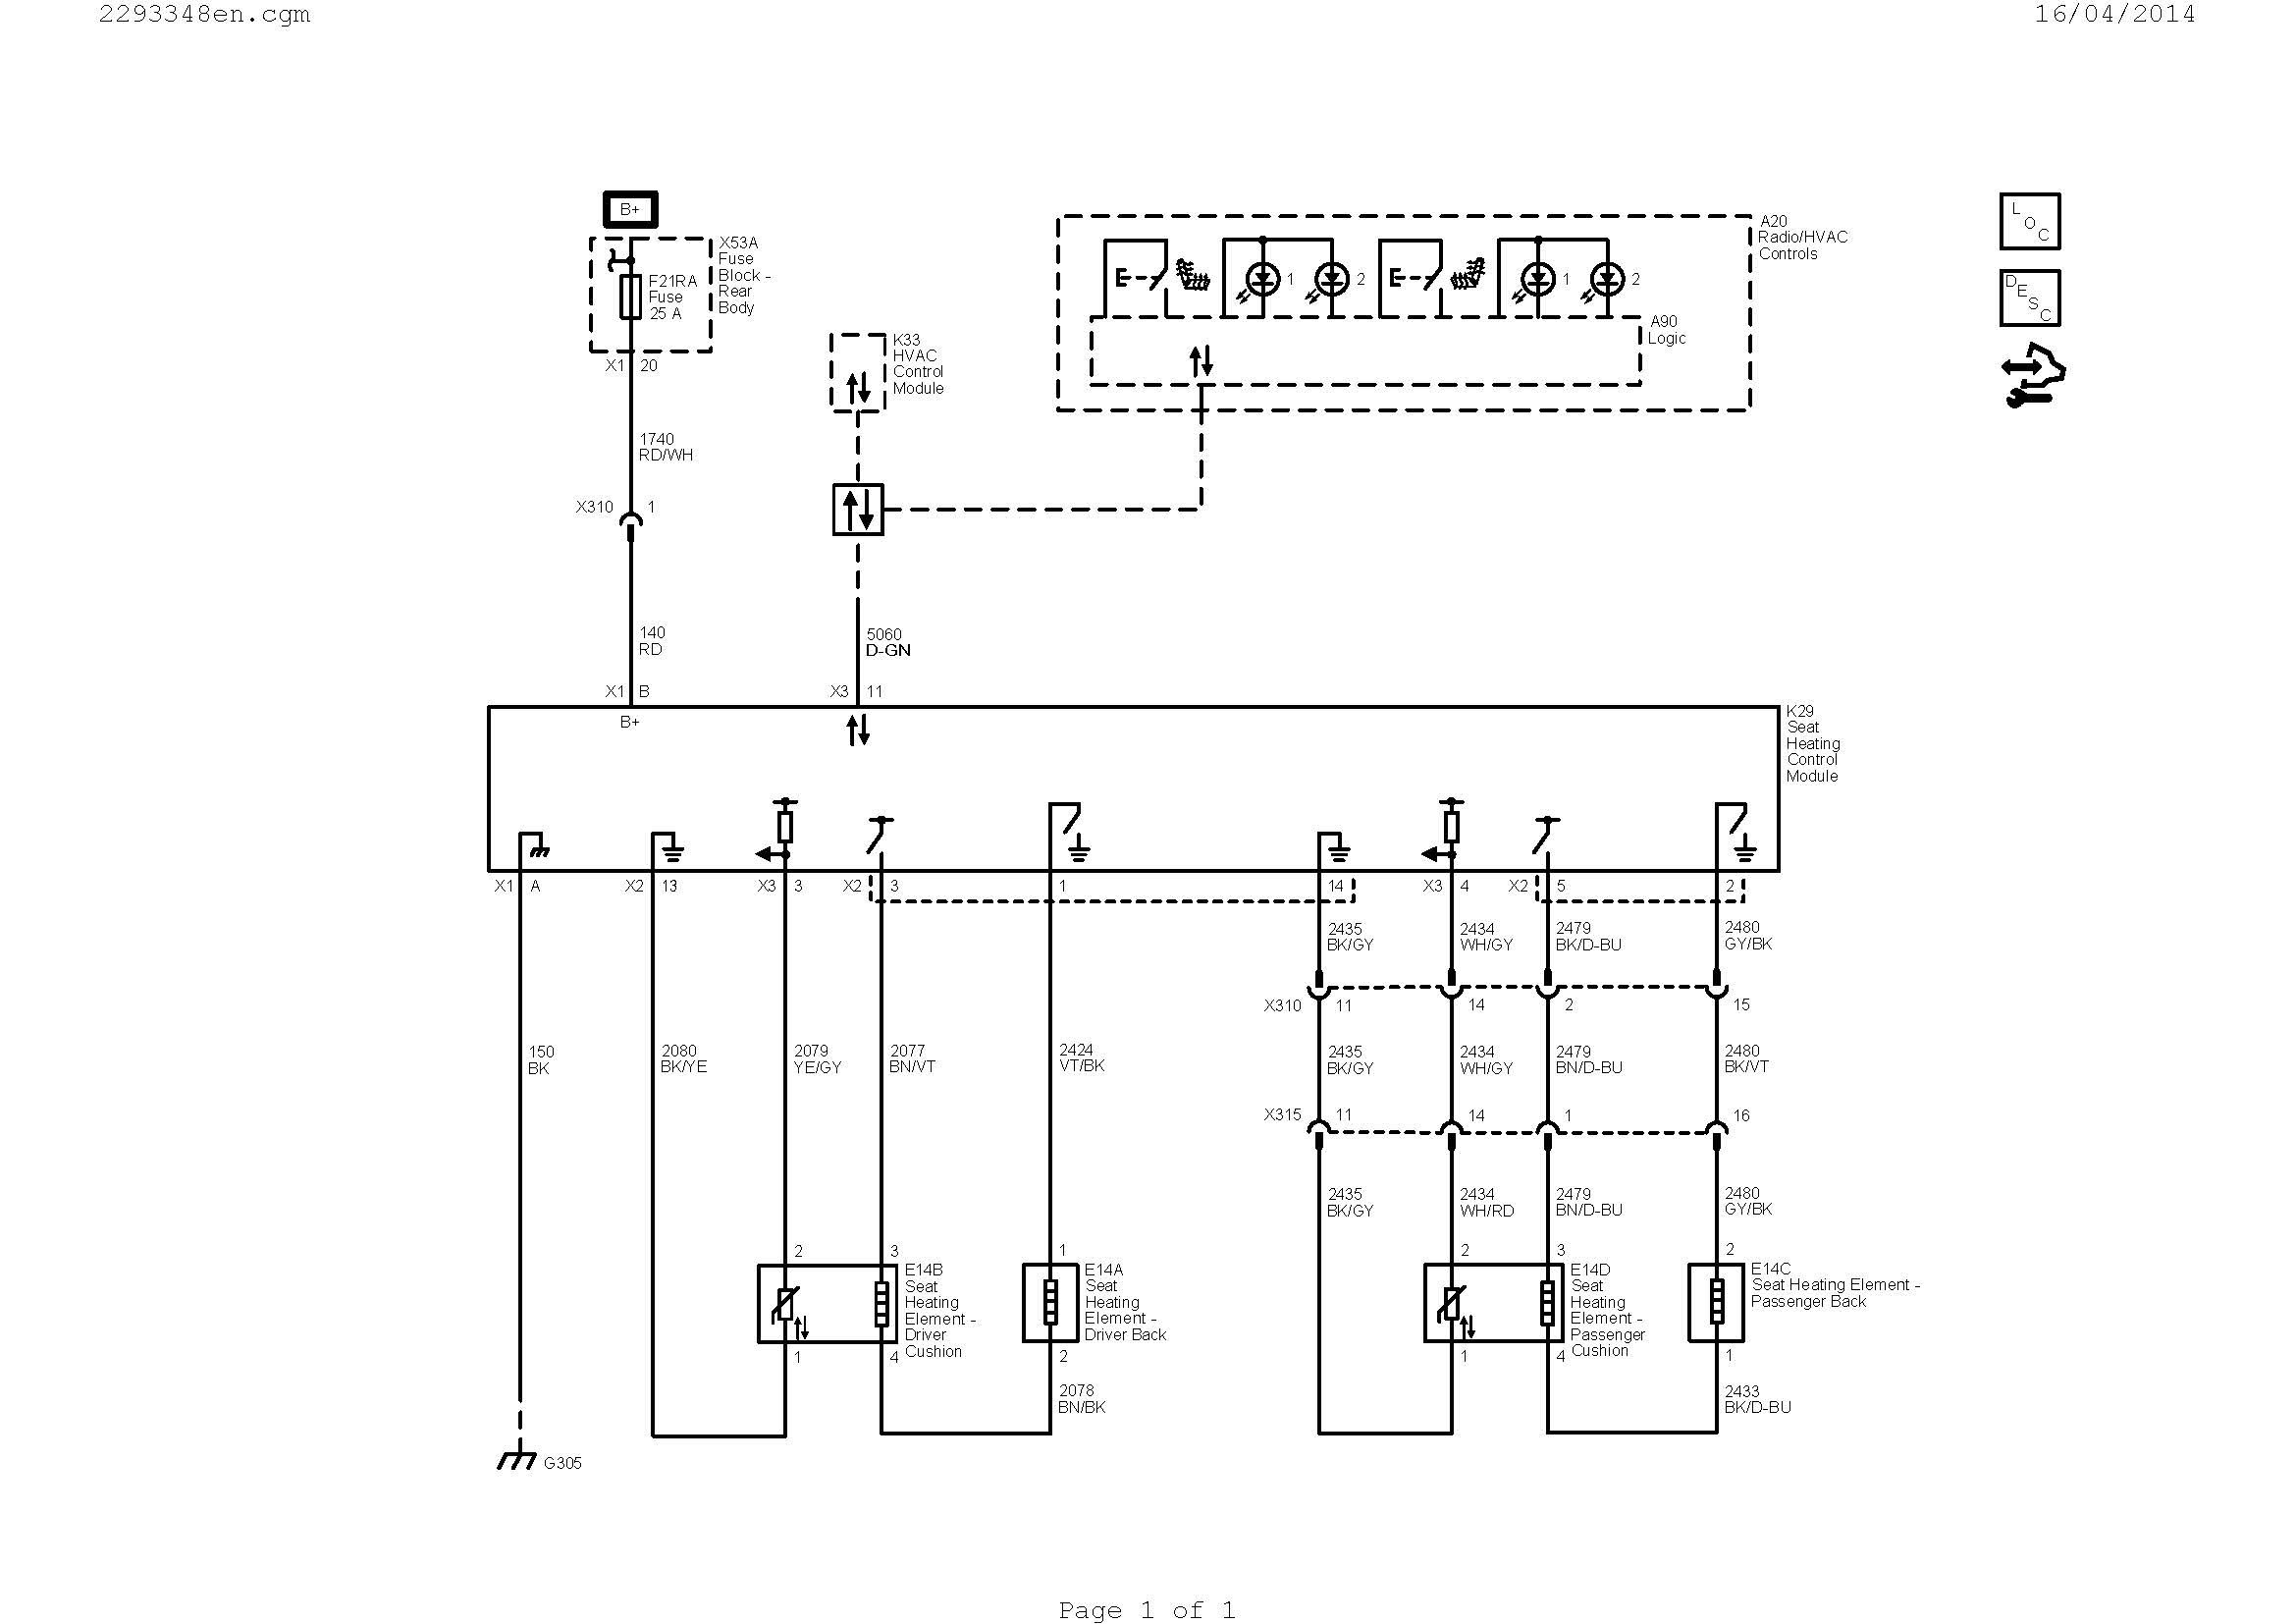 racerstar rs20ax4 v2 wiring diagram Download-headphone wiring diagram Download understanding hvac wiring diagrams Download Diagram Websites Unique Hvac Diagram 0d DOWNLOAD Wiring Diagram 10-p